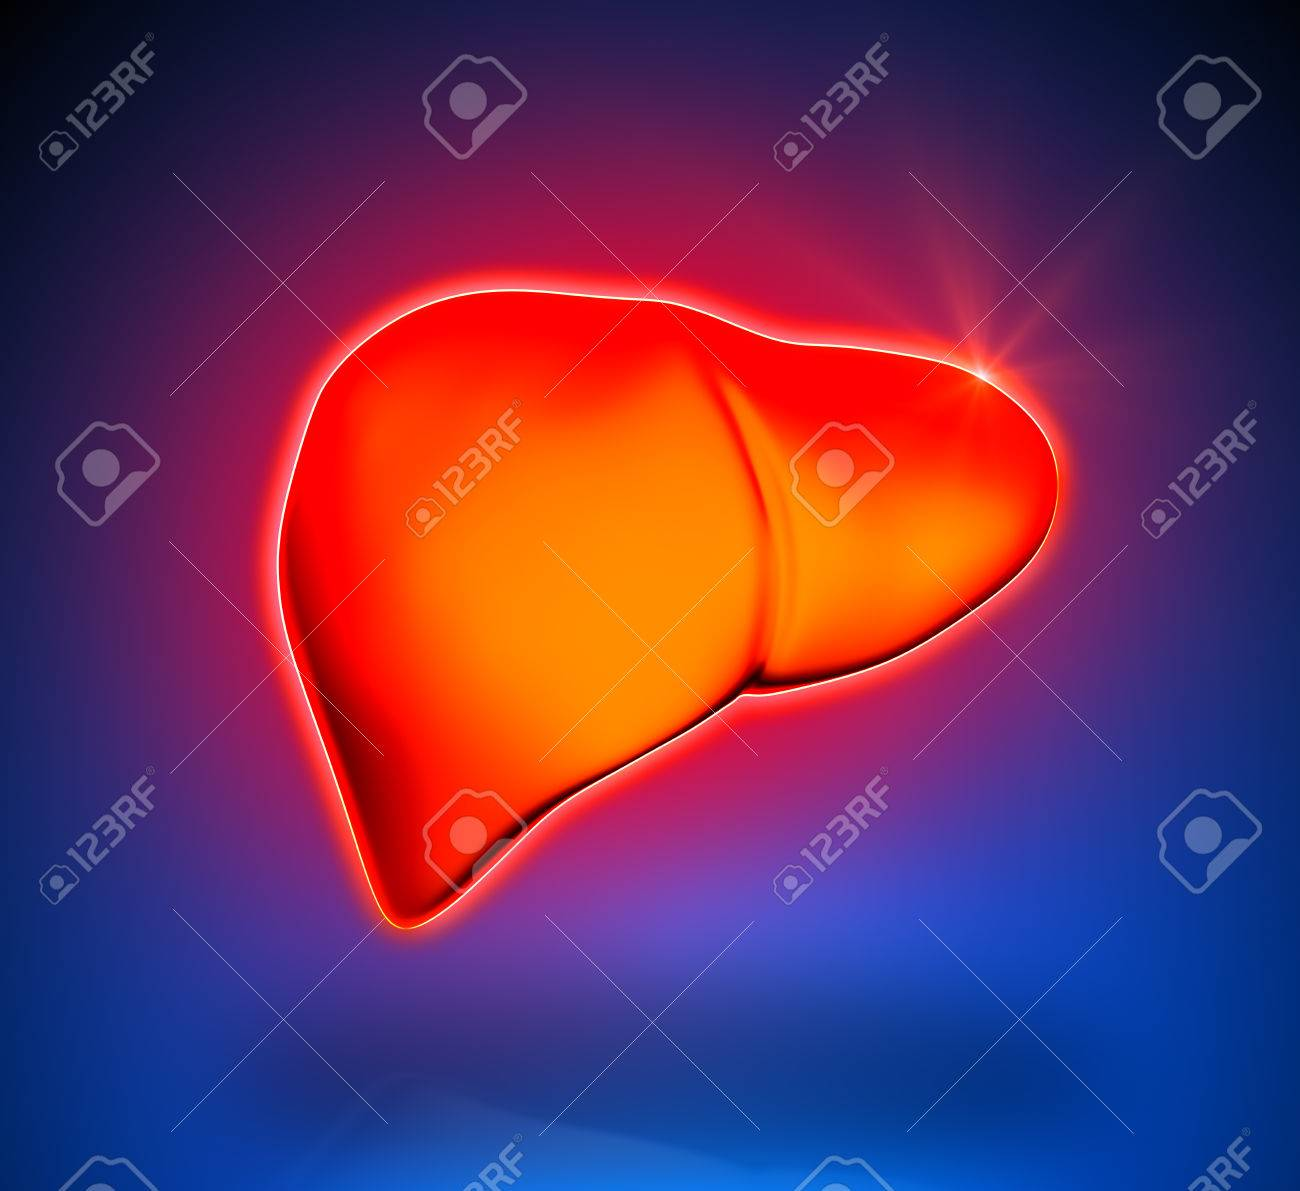 Liver - Internal organs - blue background Stock Photo - 22971492